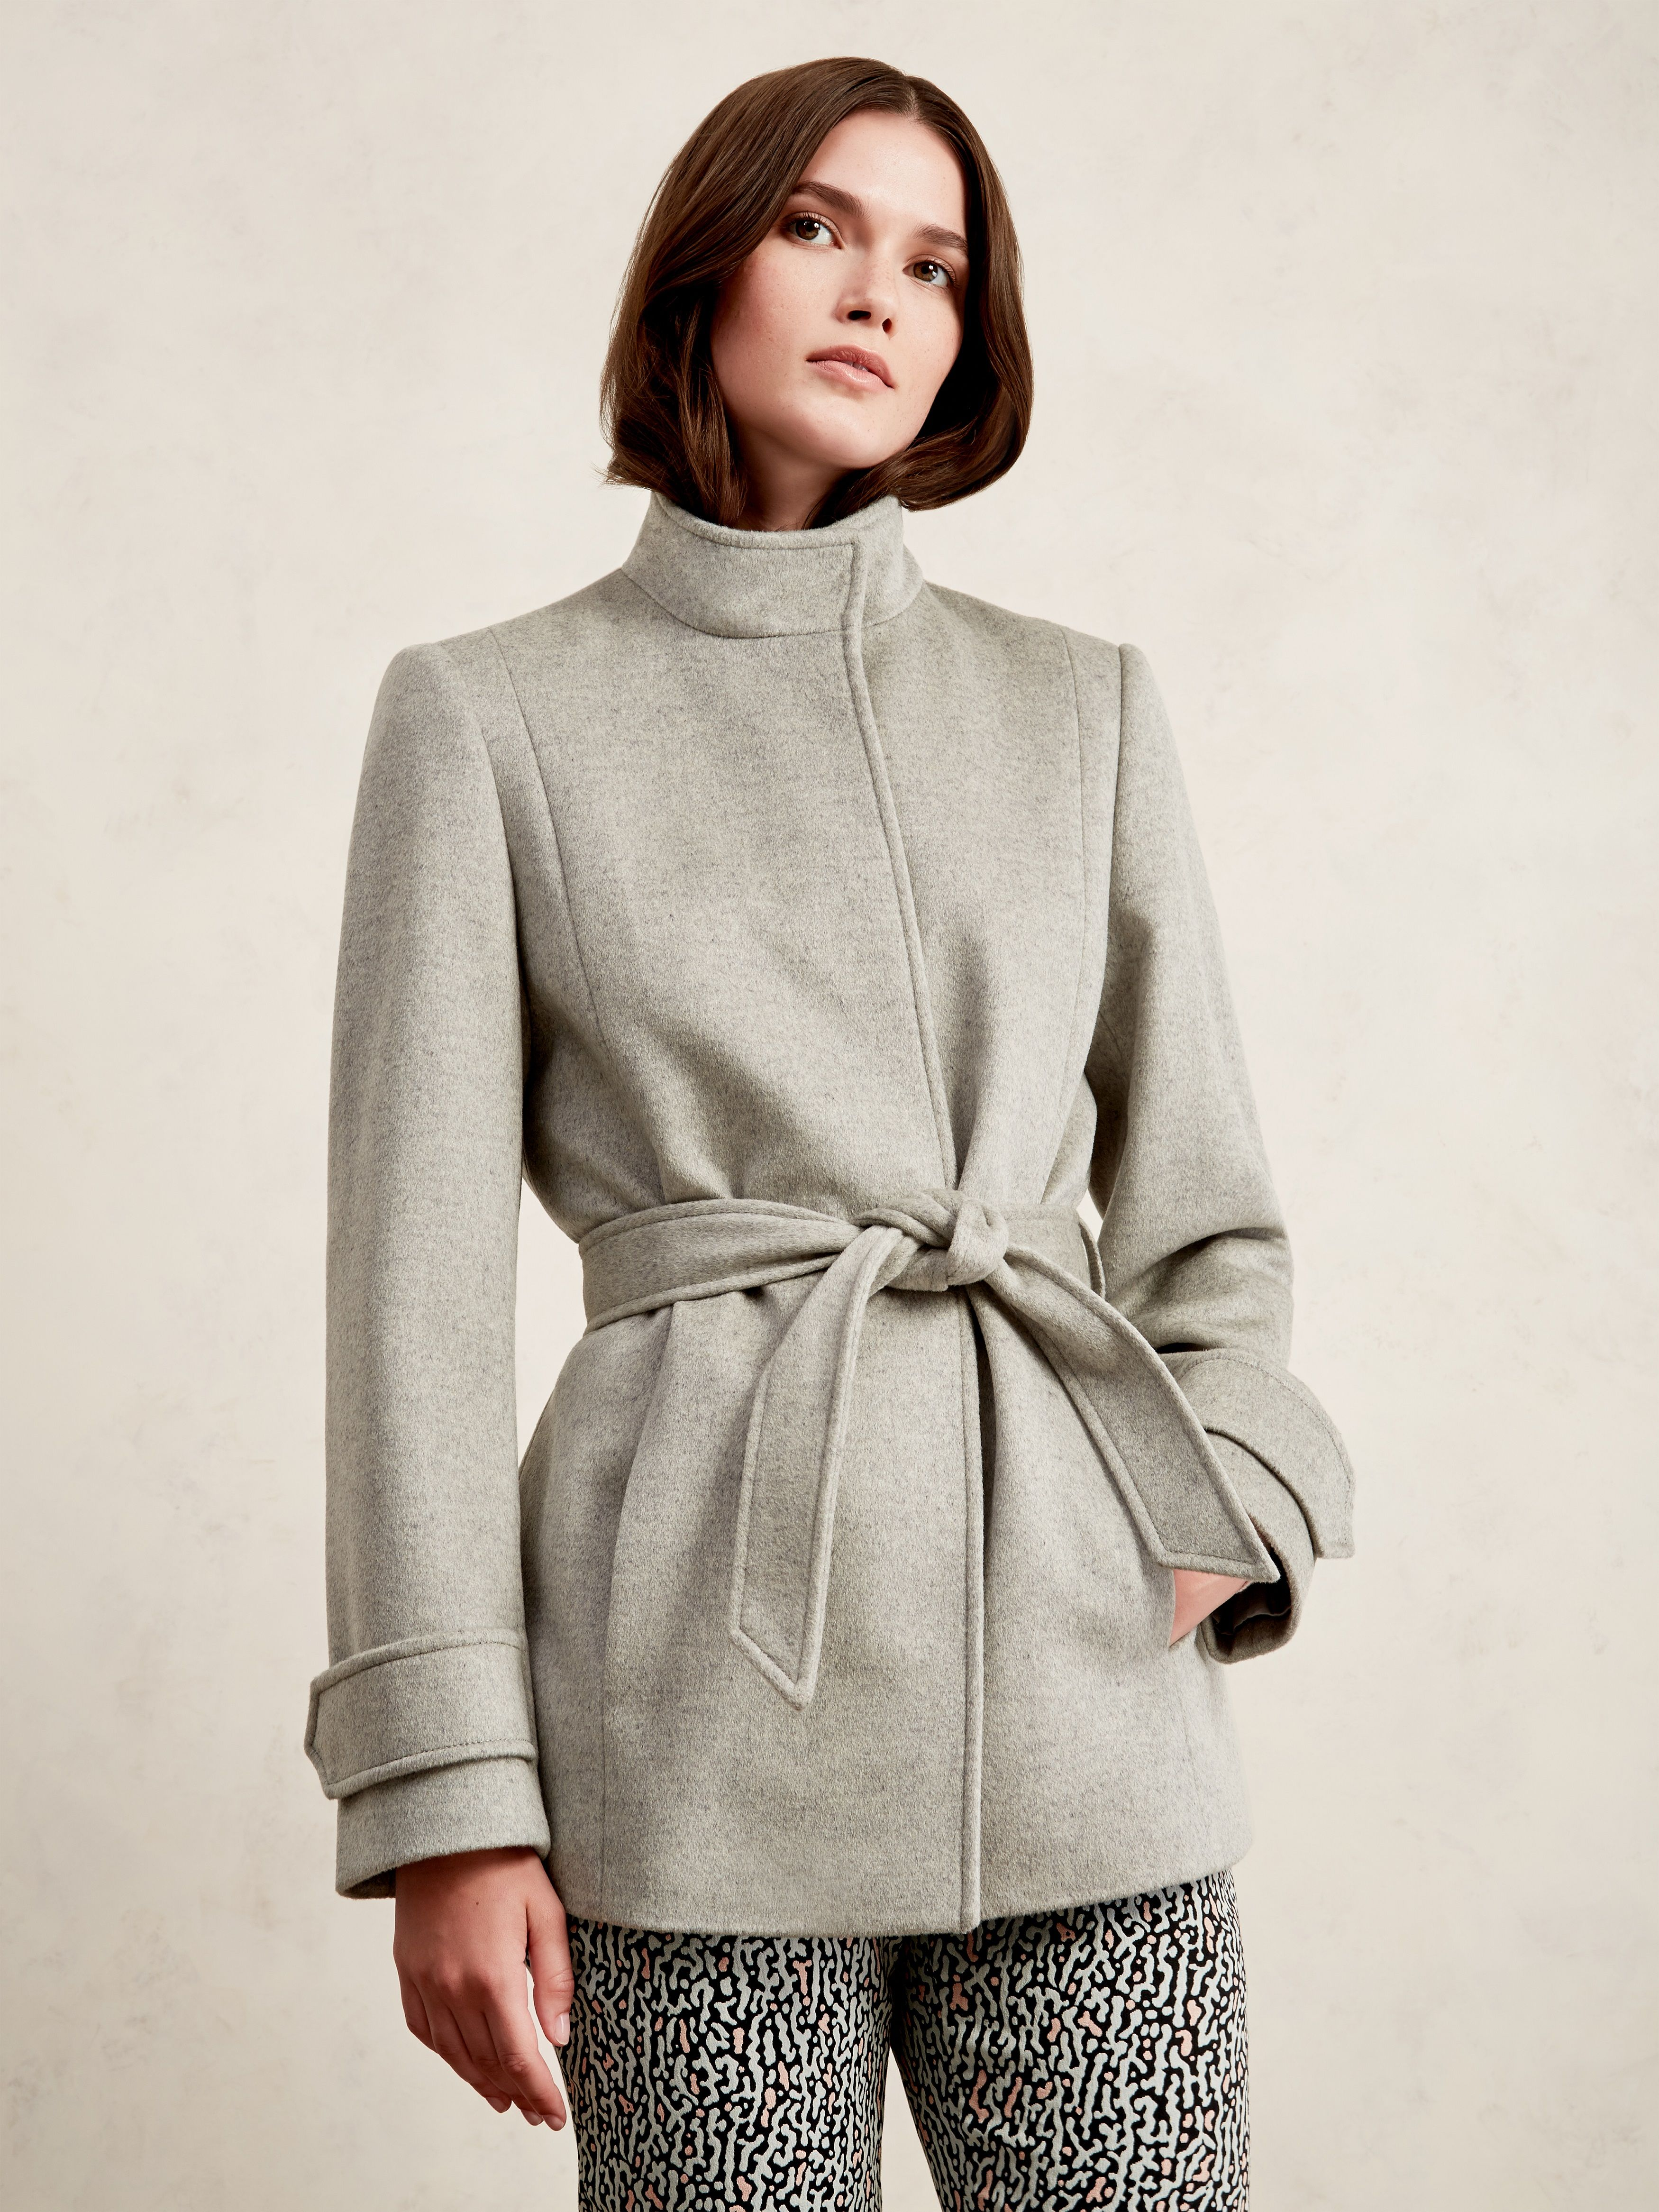 Wool Funnel Neck Coat and Ripple Jacquard Trousers.